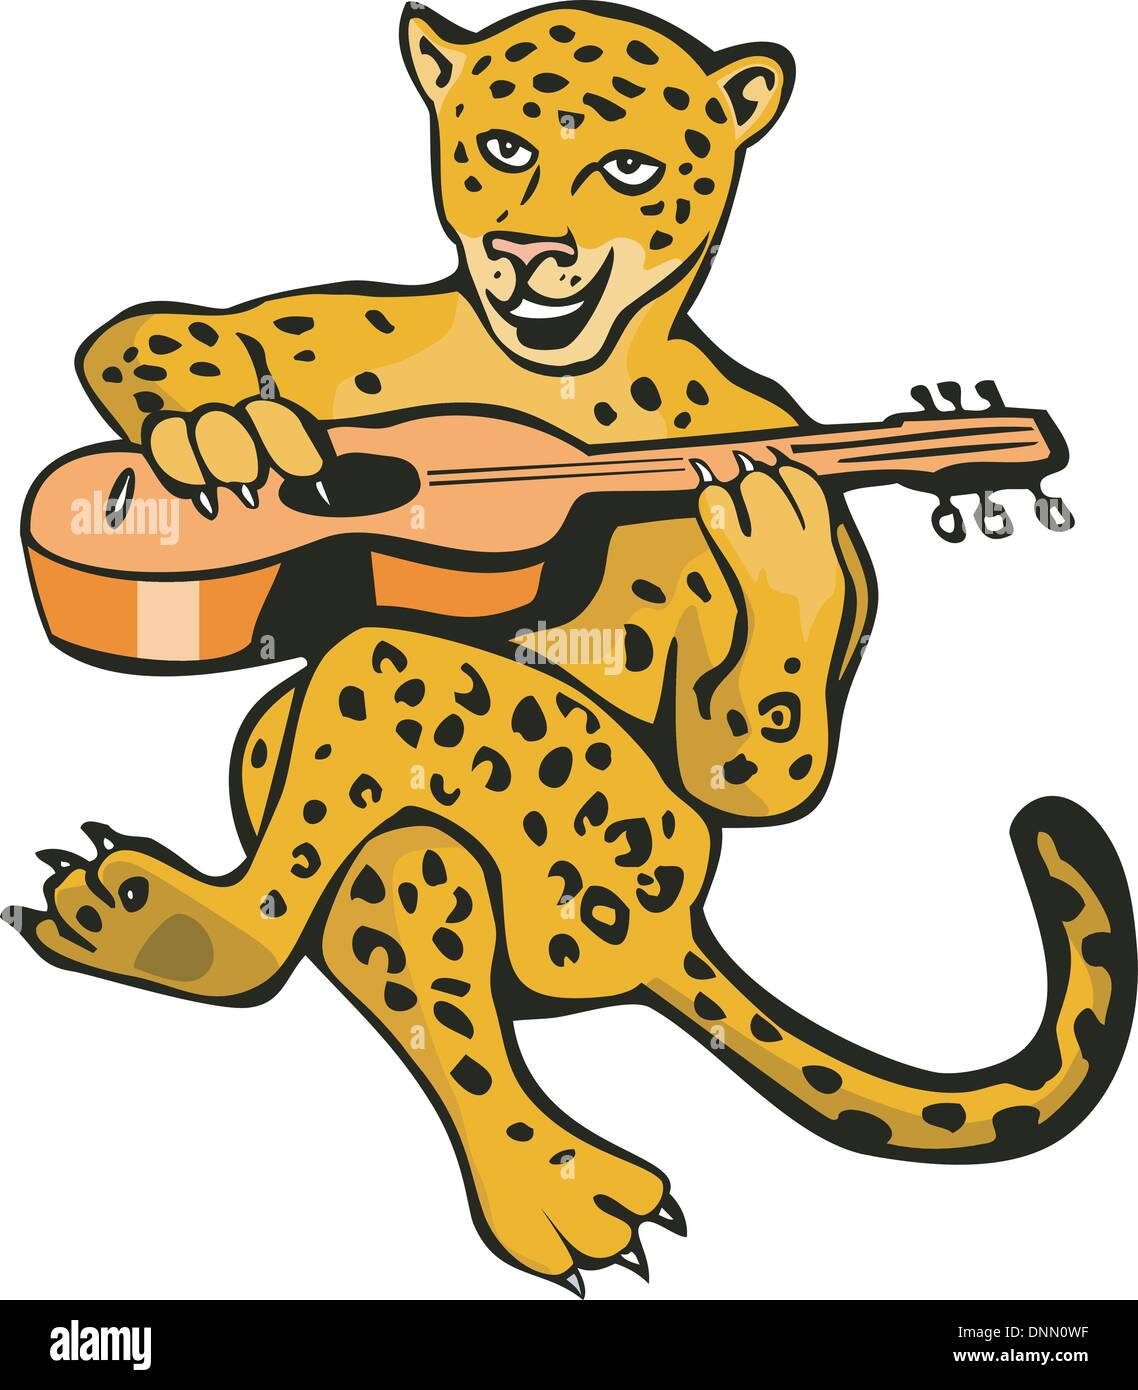 illustration of a cartoon jaguar lion playing guitar isolated on